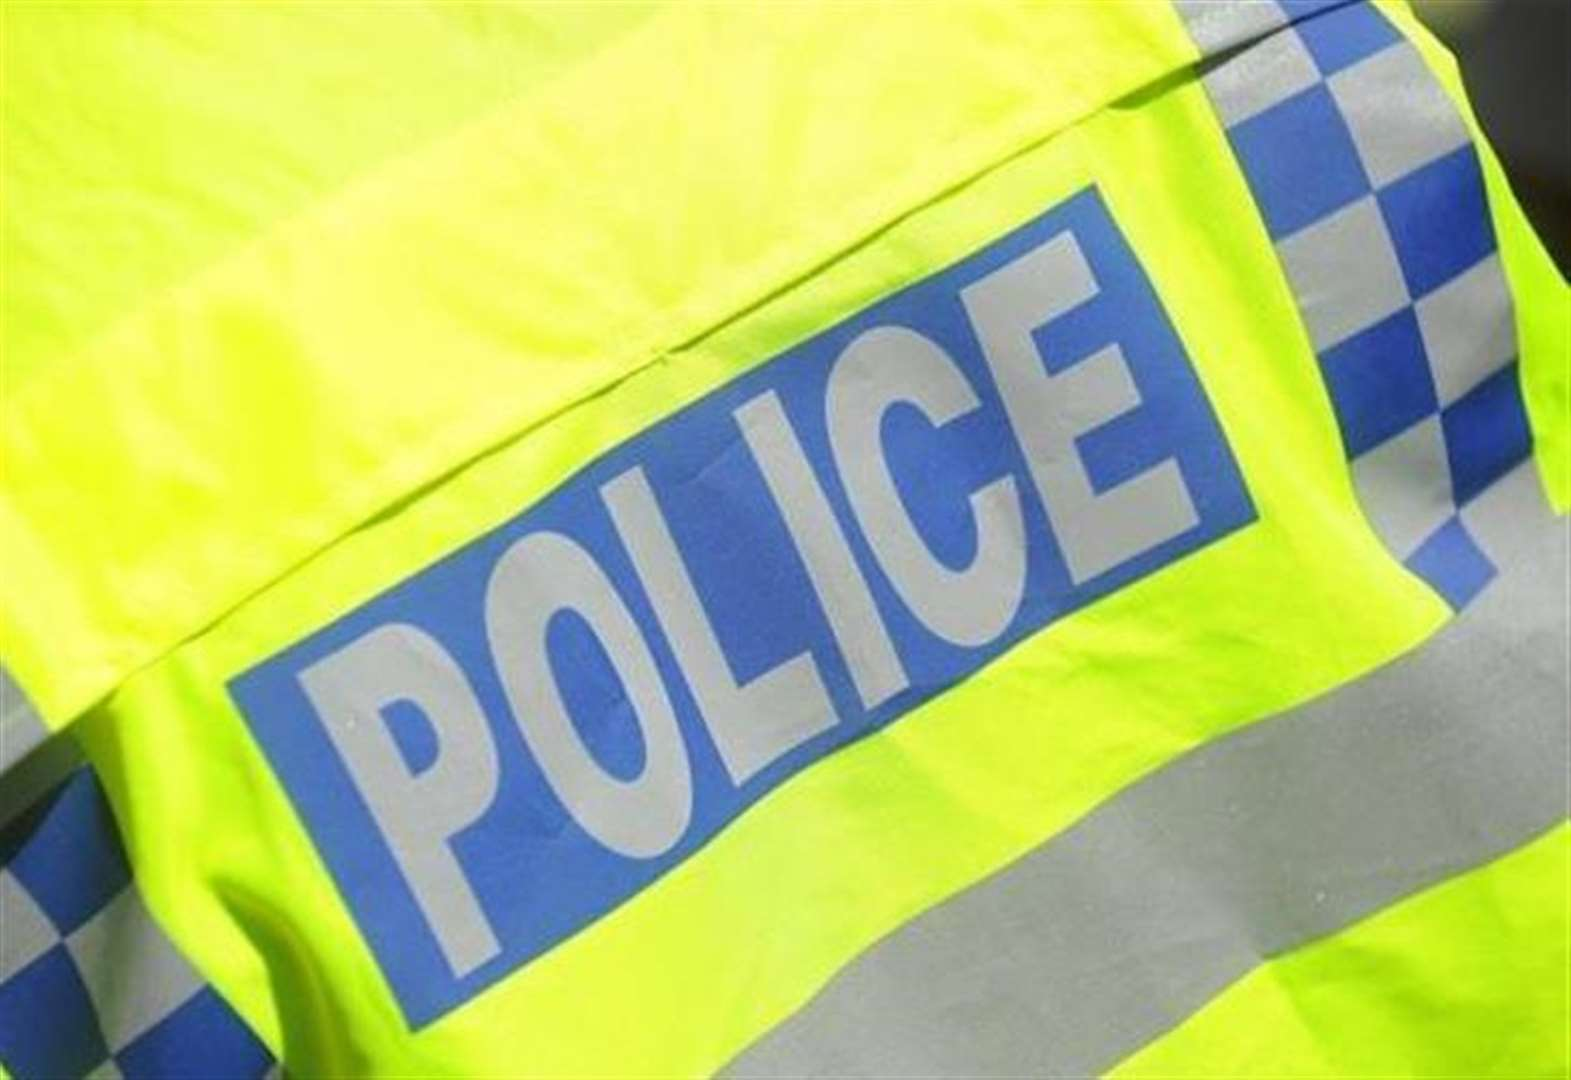 Motorcyclist dies after colliding with fence on Soham bypass